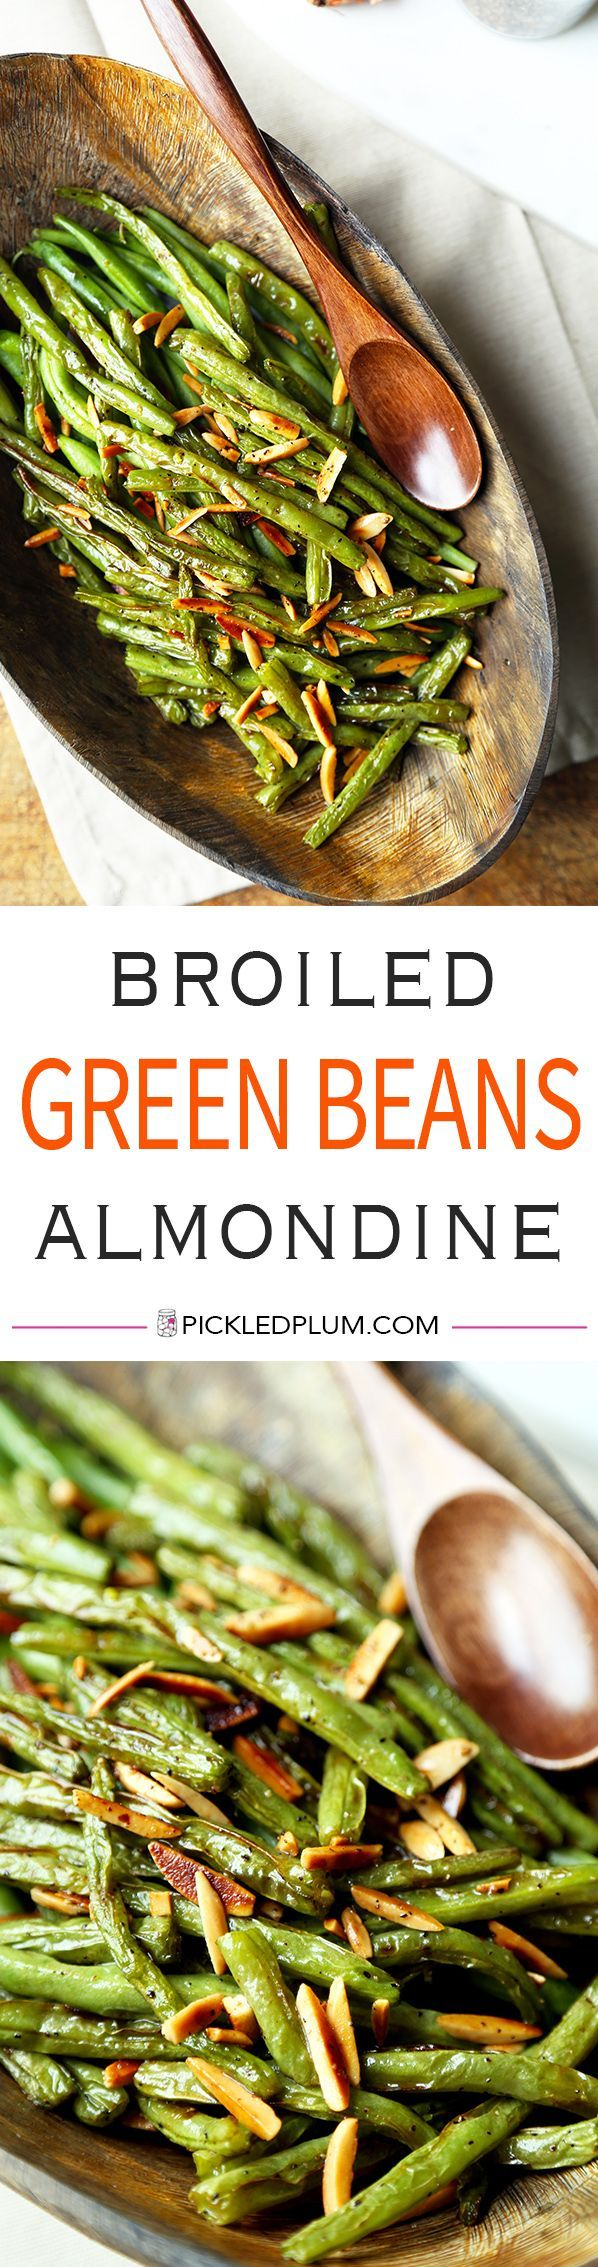 Broiled Green Beans Almondine - A buttery and nutty Broiled Green Beans Almondine Recipe thats on the healthier side and only takes 15 minutes to make from start to finish! Recipe, gluten free, side, appetizer, snack, healthy, vegetables   pickledplum.com